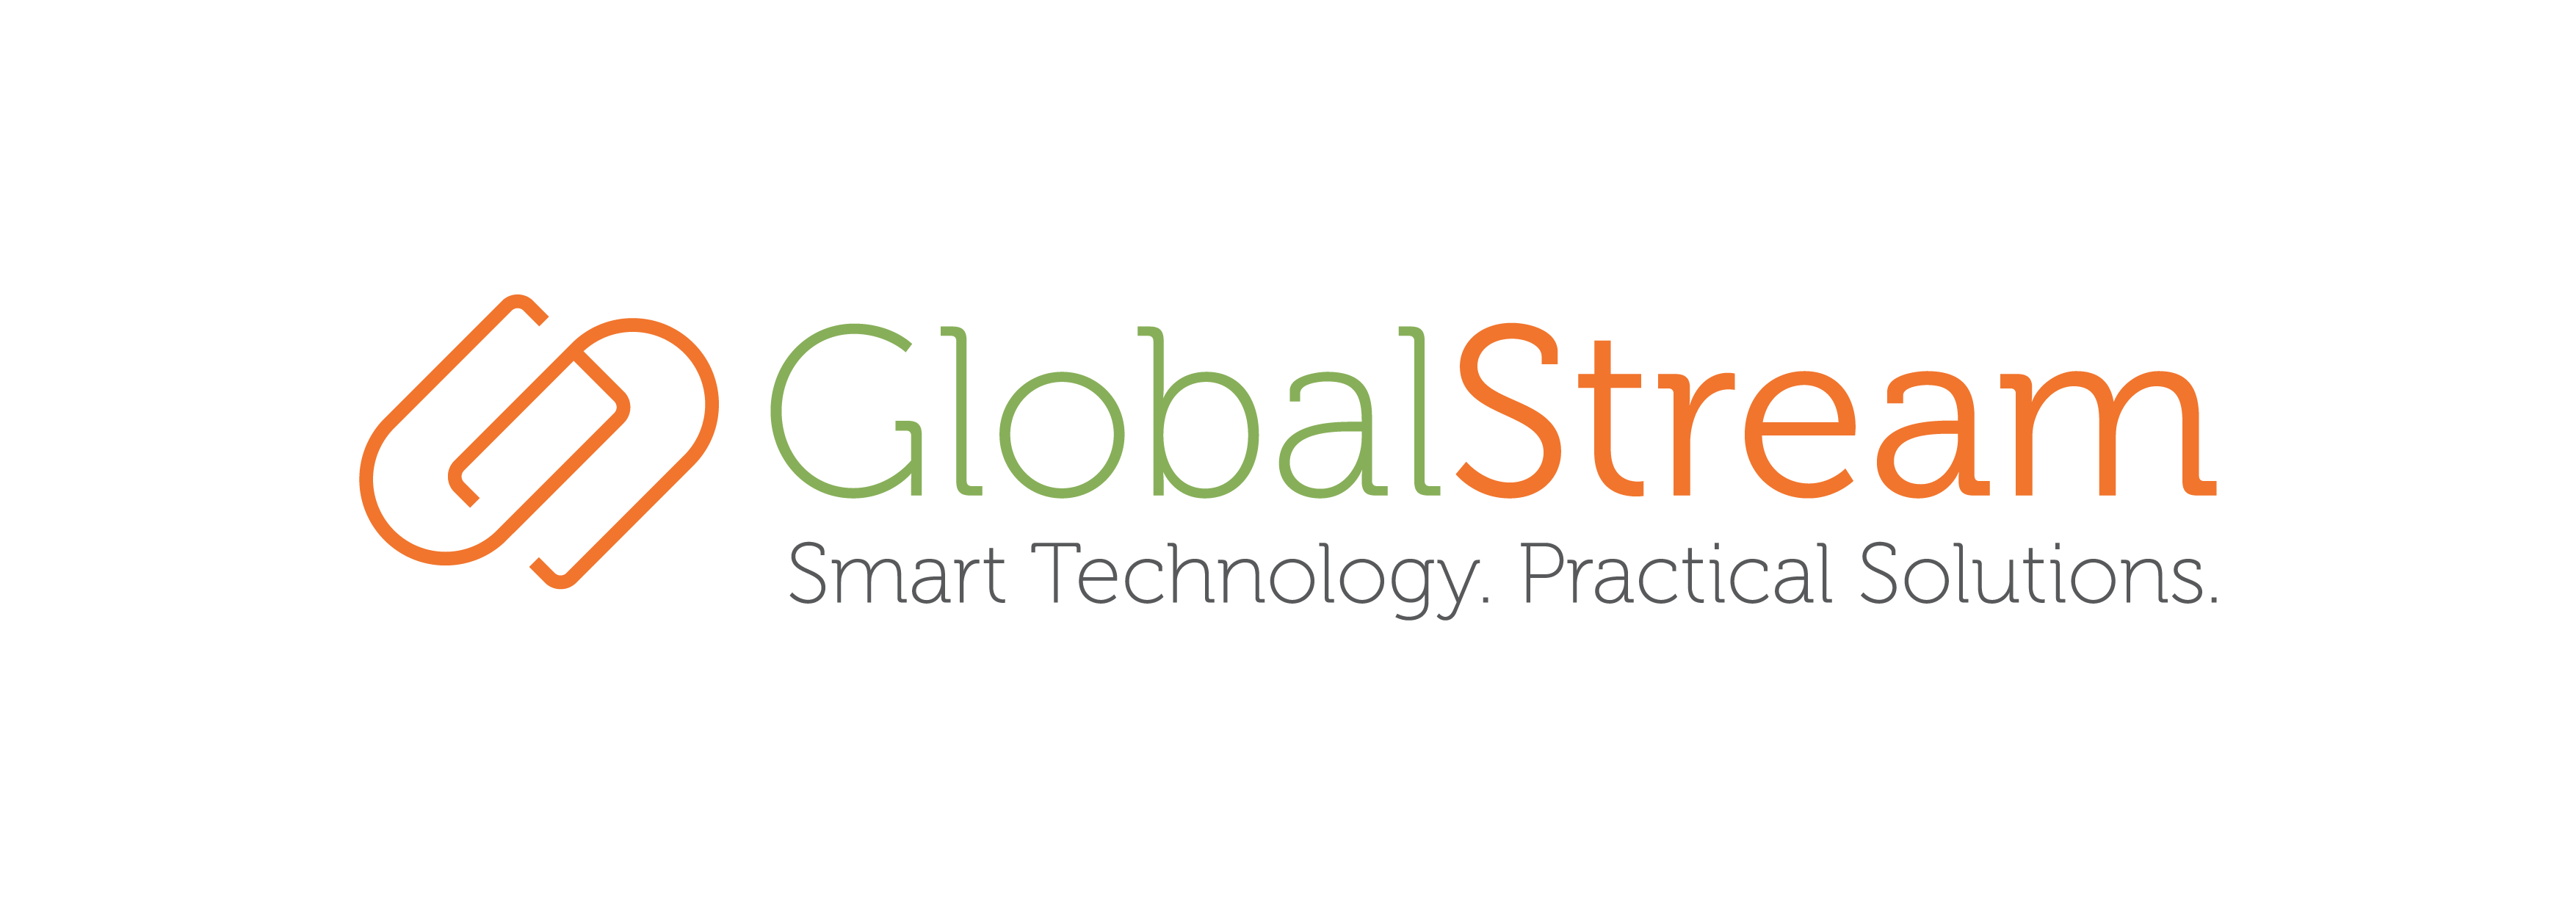 GlobalStream